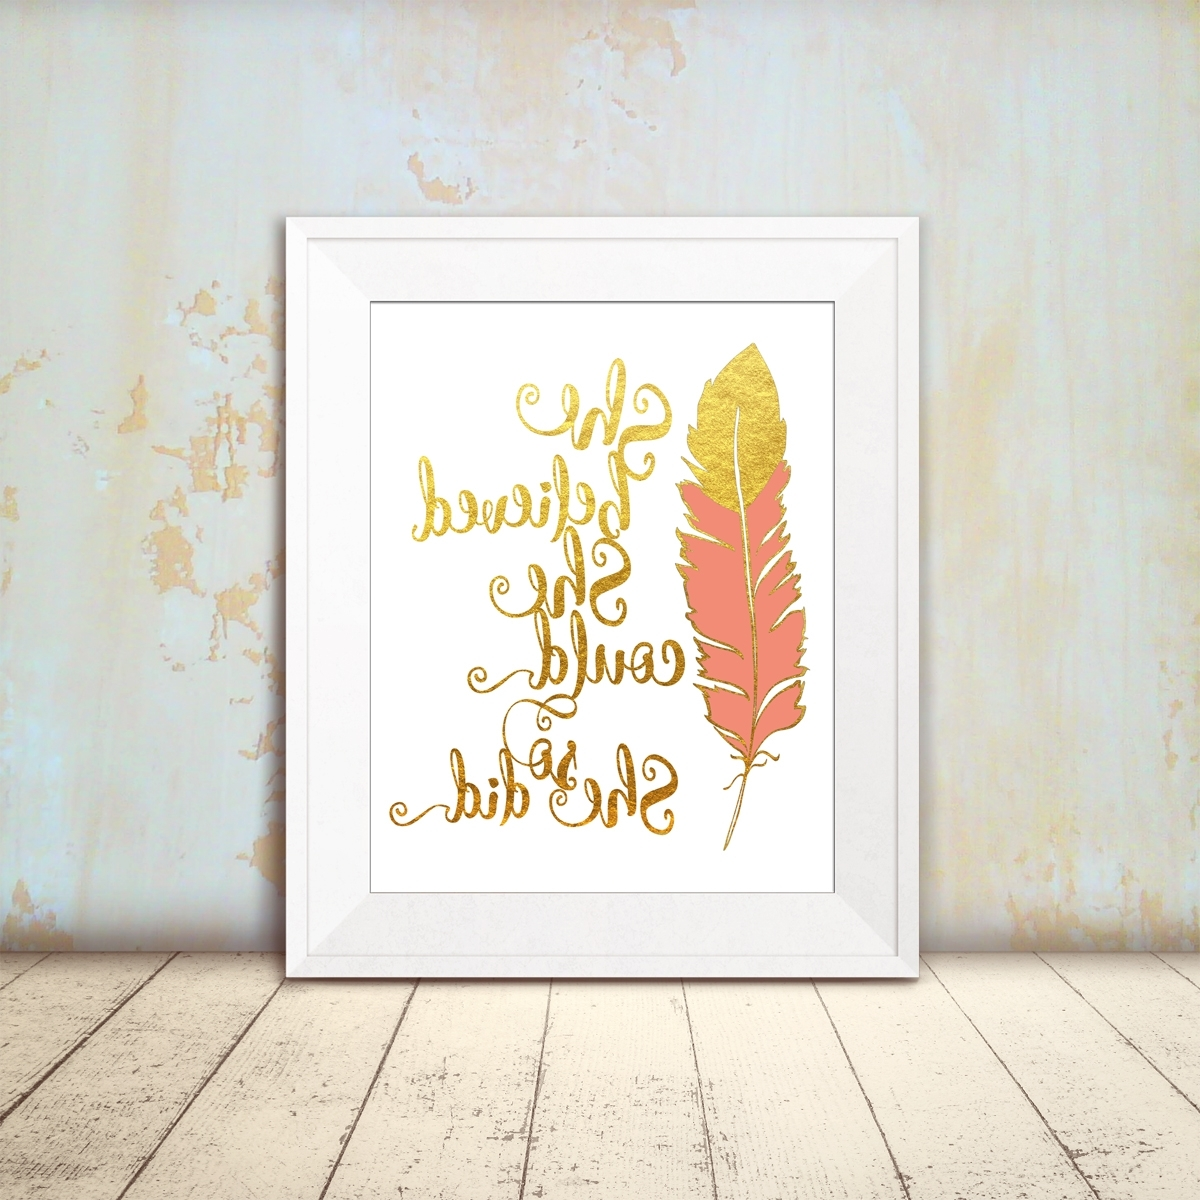 She Believed Inspirational Feather Print For Well Liked She Believed She Could So She Did Wall Art (View 6 of 15)